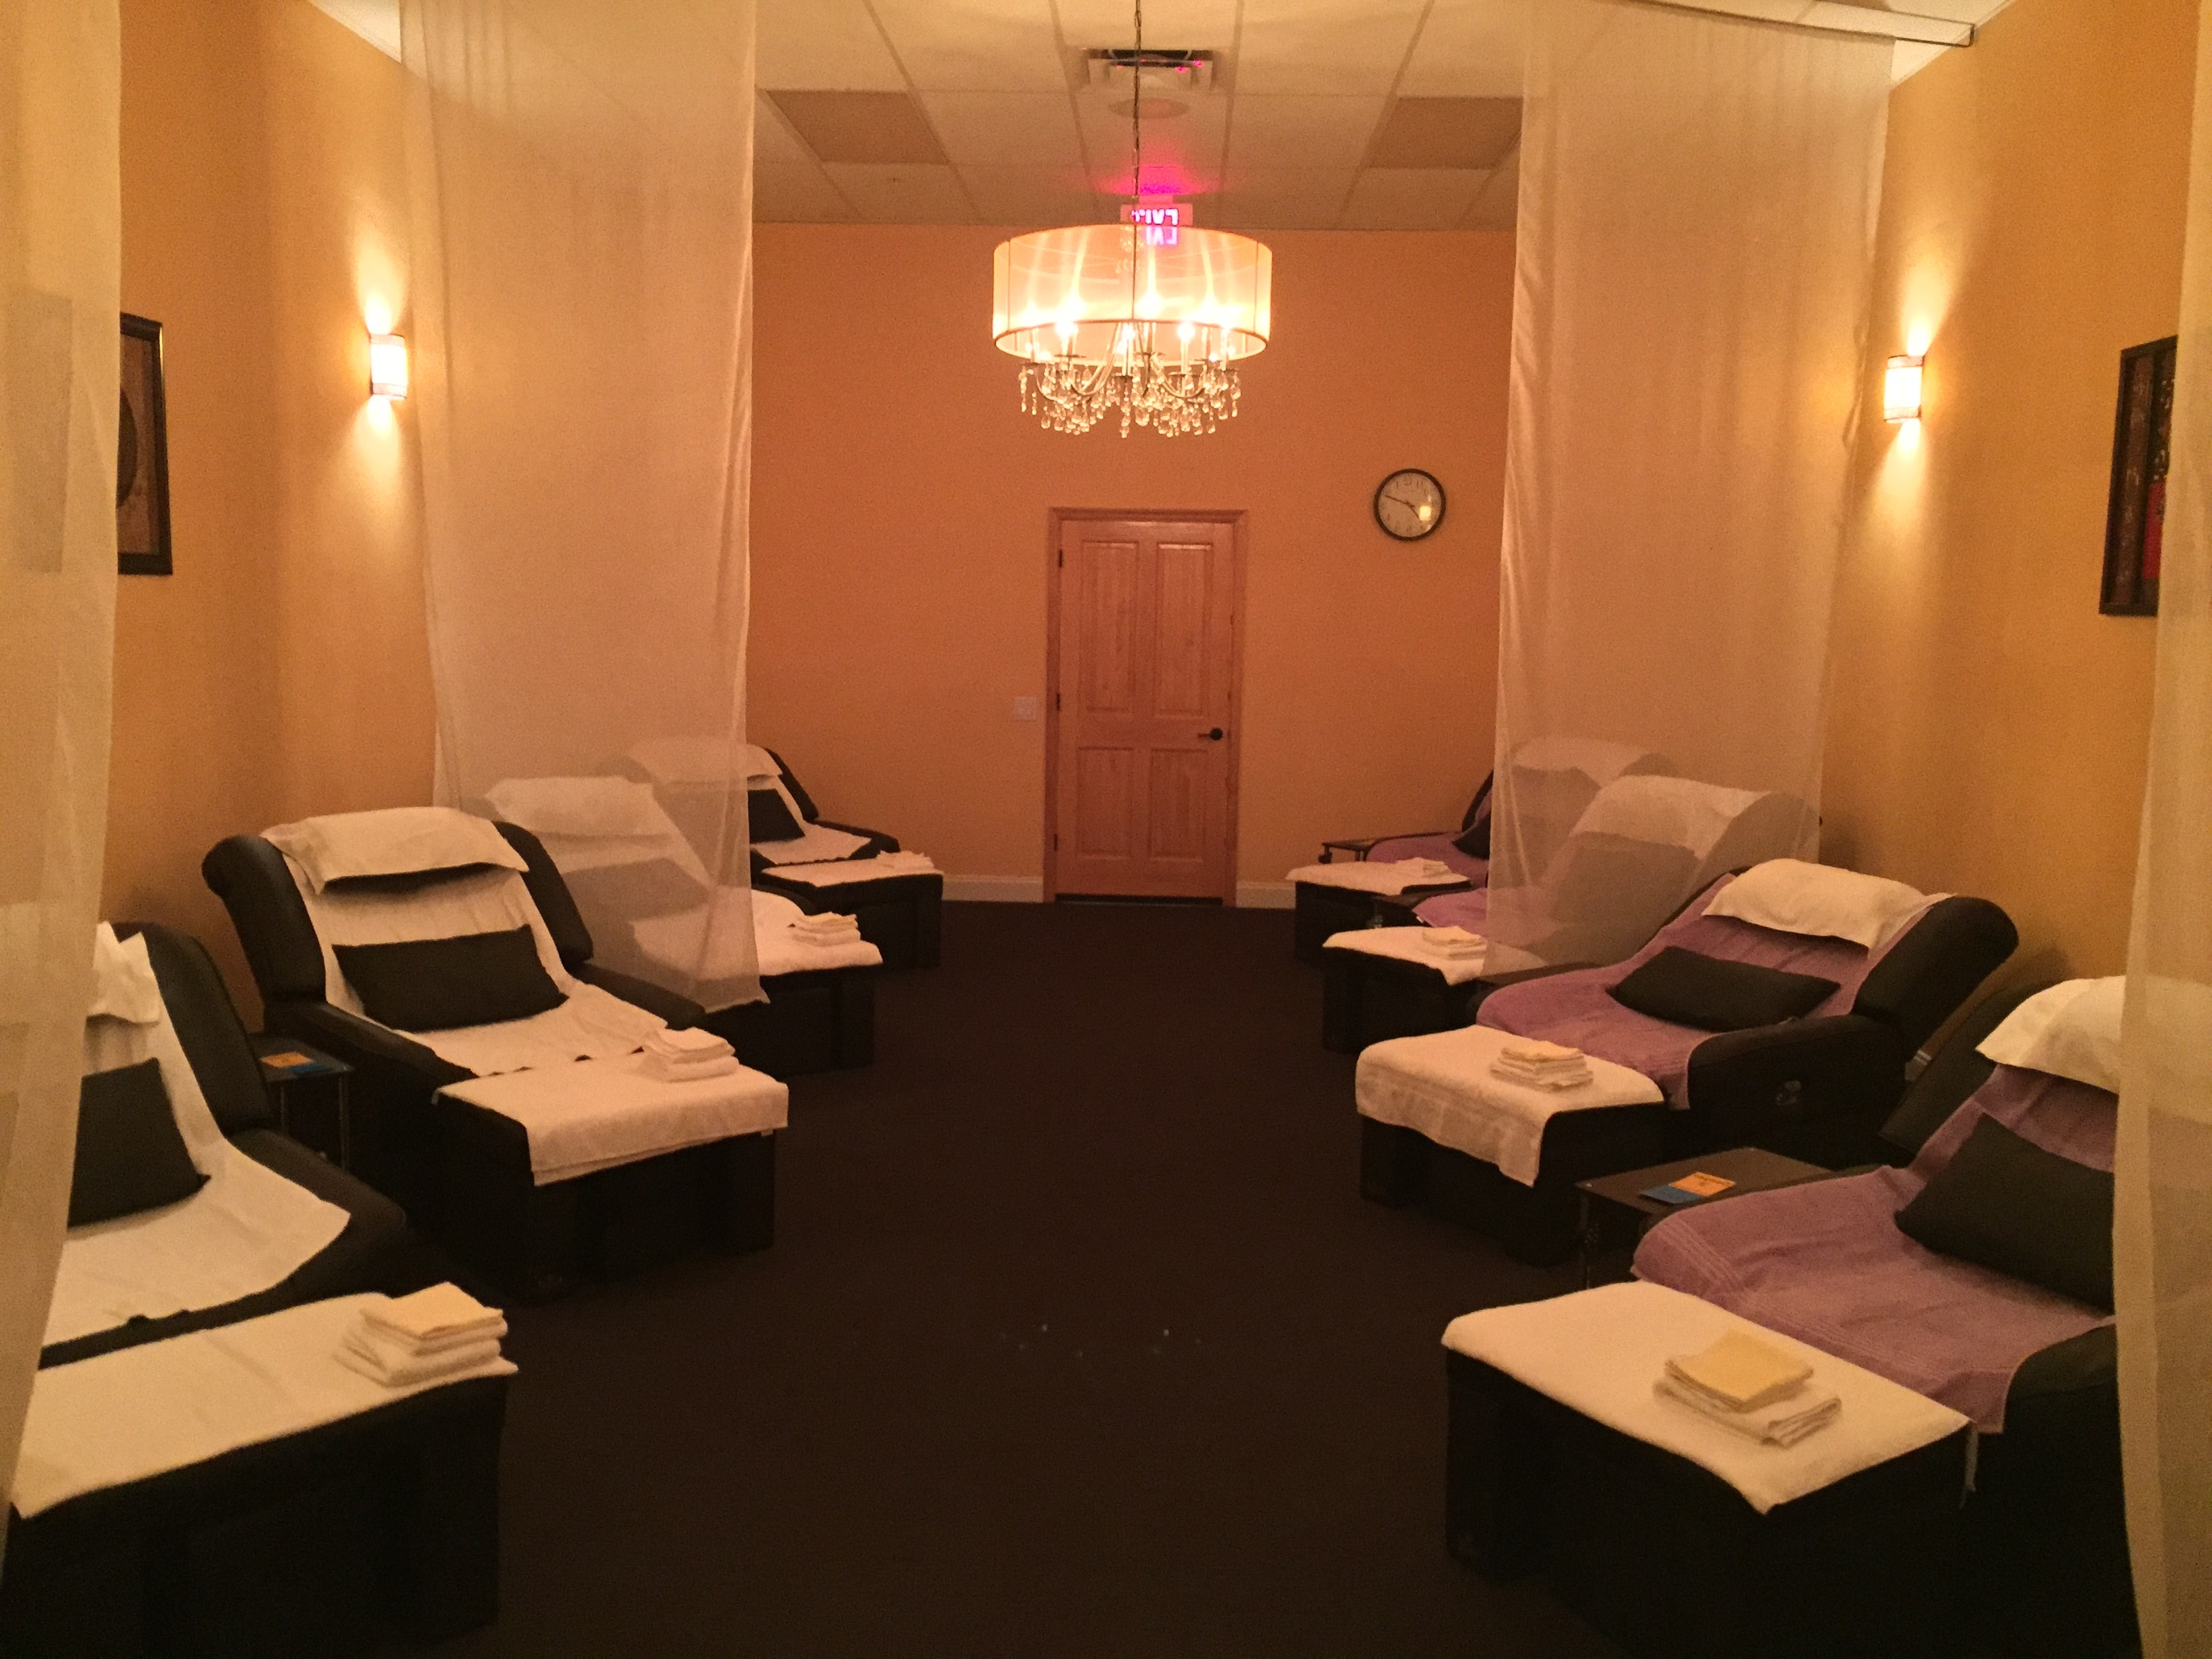 Foot Massage Spa And Acupressure Body Massage (View 7 of 15)